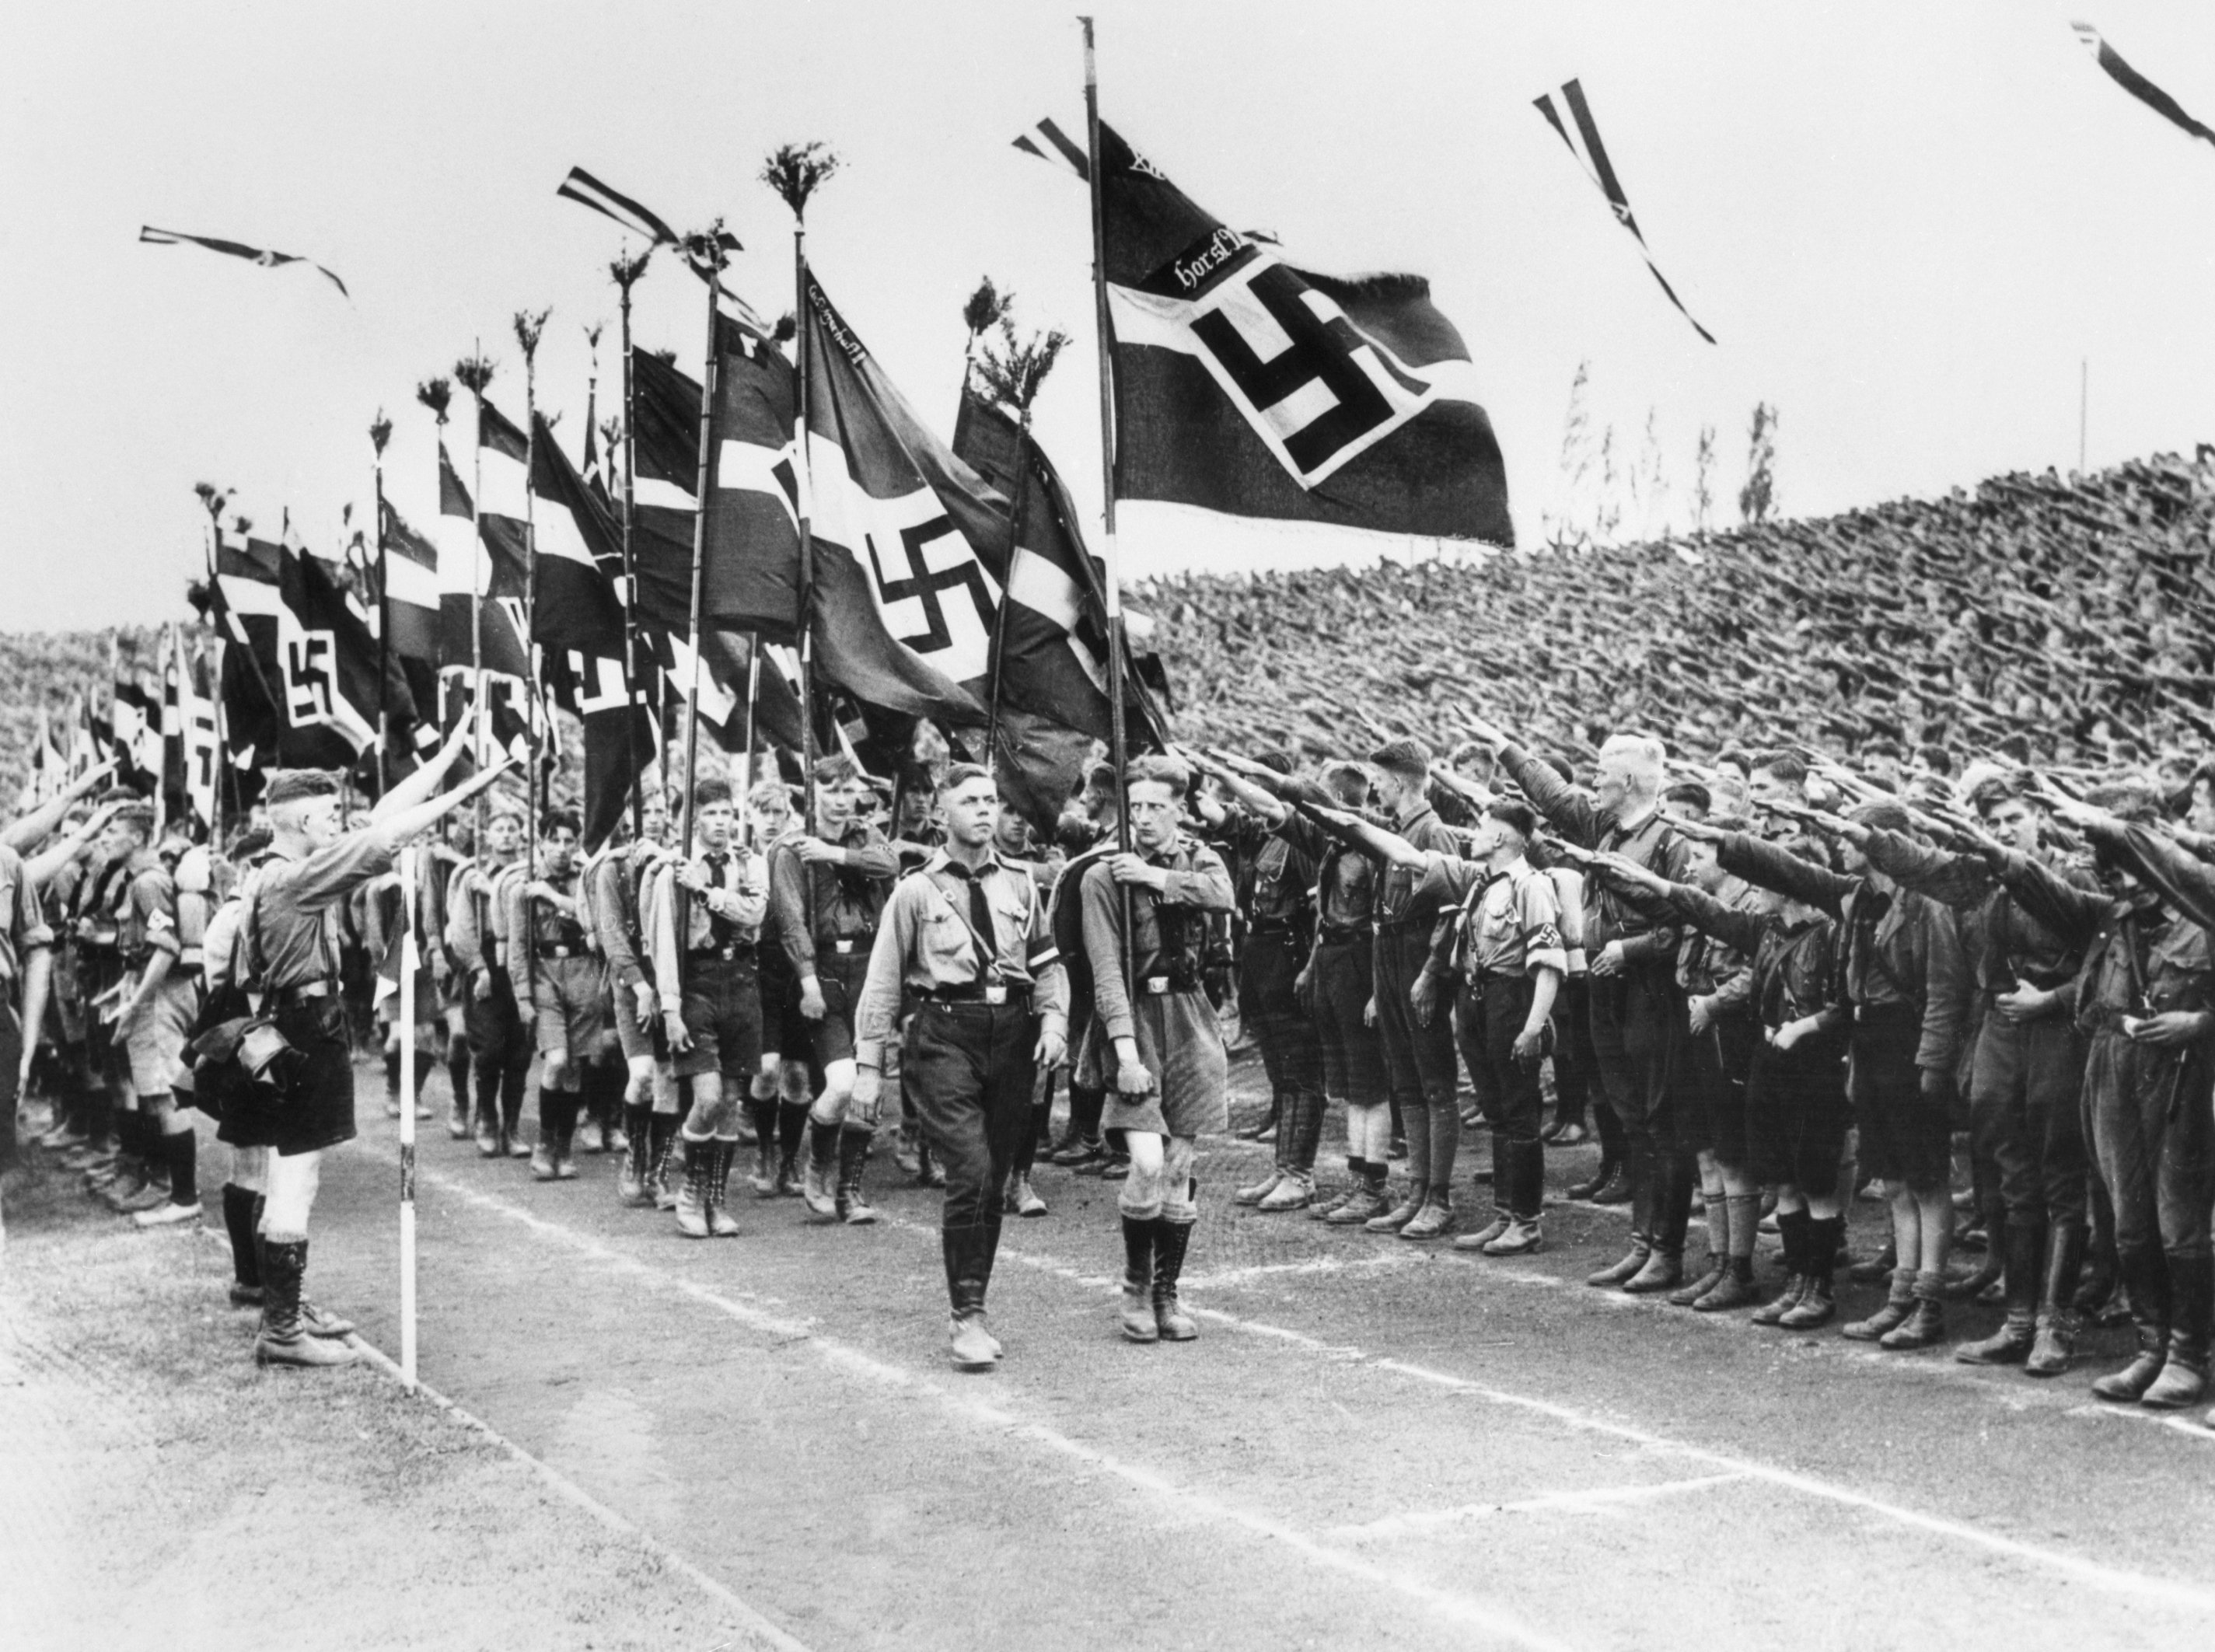 how the nazi party become the In the mid-1920s, joseph goebbels was given the difficult task of fostering support for the growing nazi party in berlin, the reddest city in europe besides moscow.